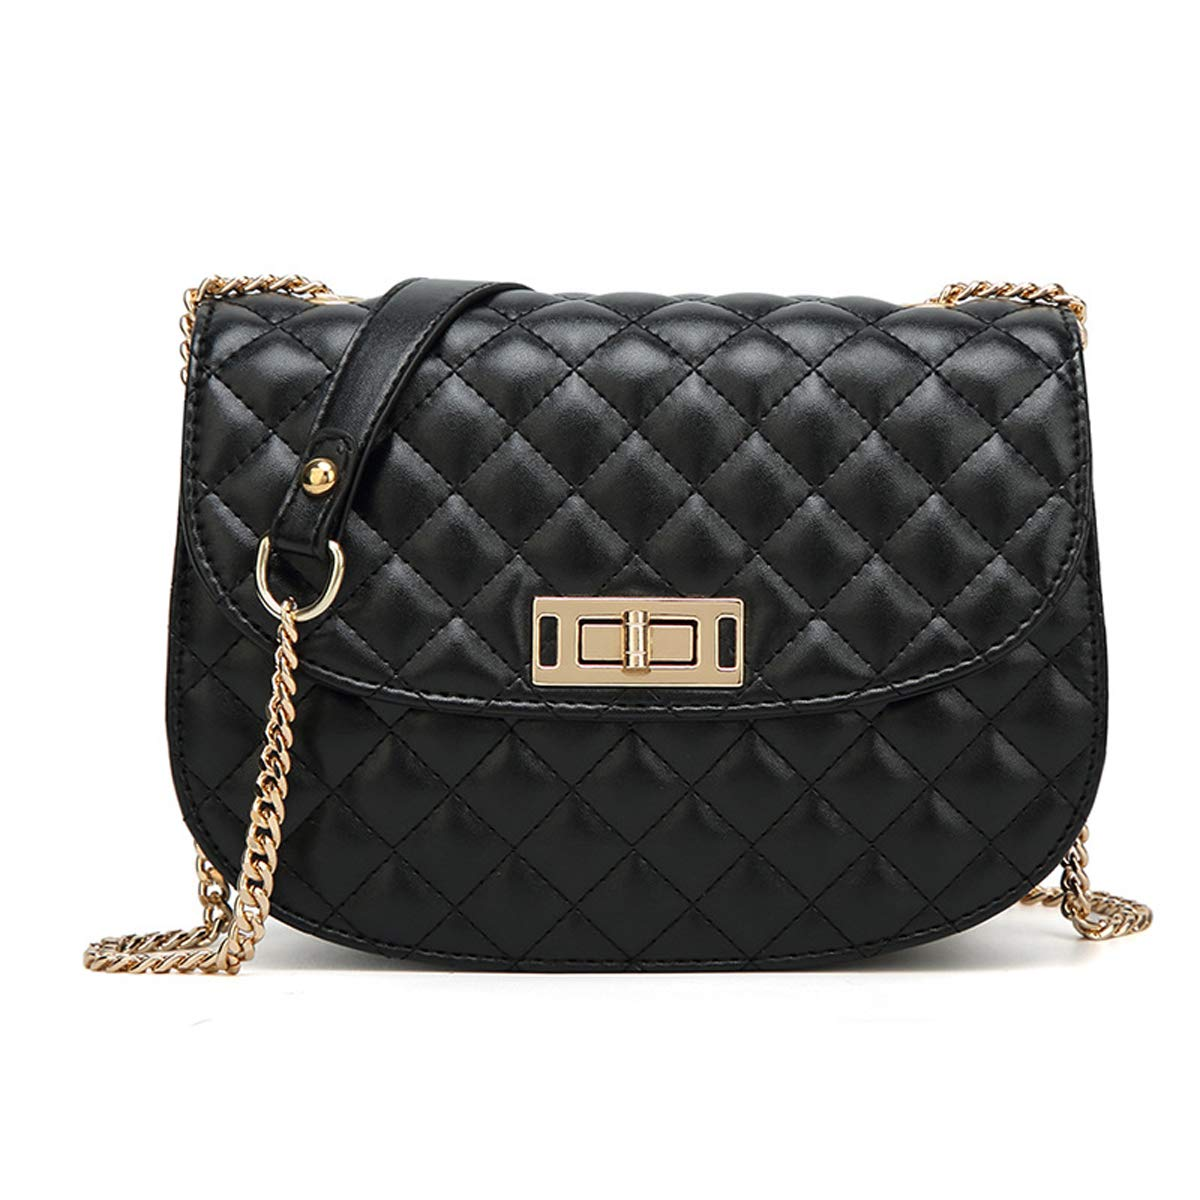 Quilted Handbags Chain Crossbody Purse Small Shoulder Bags with Turn-lock  for Women Girls (Black)  Handbags  Amazon.com 81cceb4f18